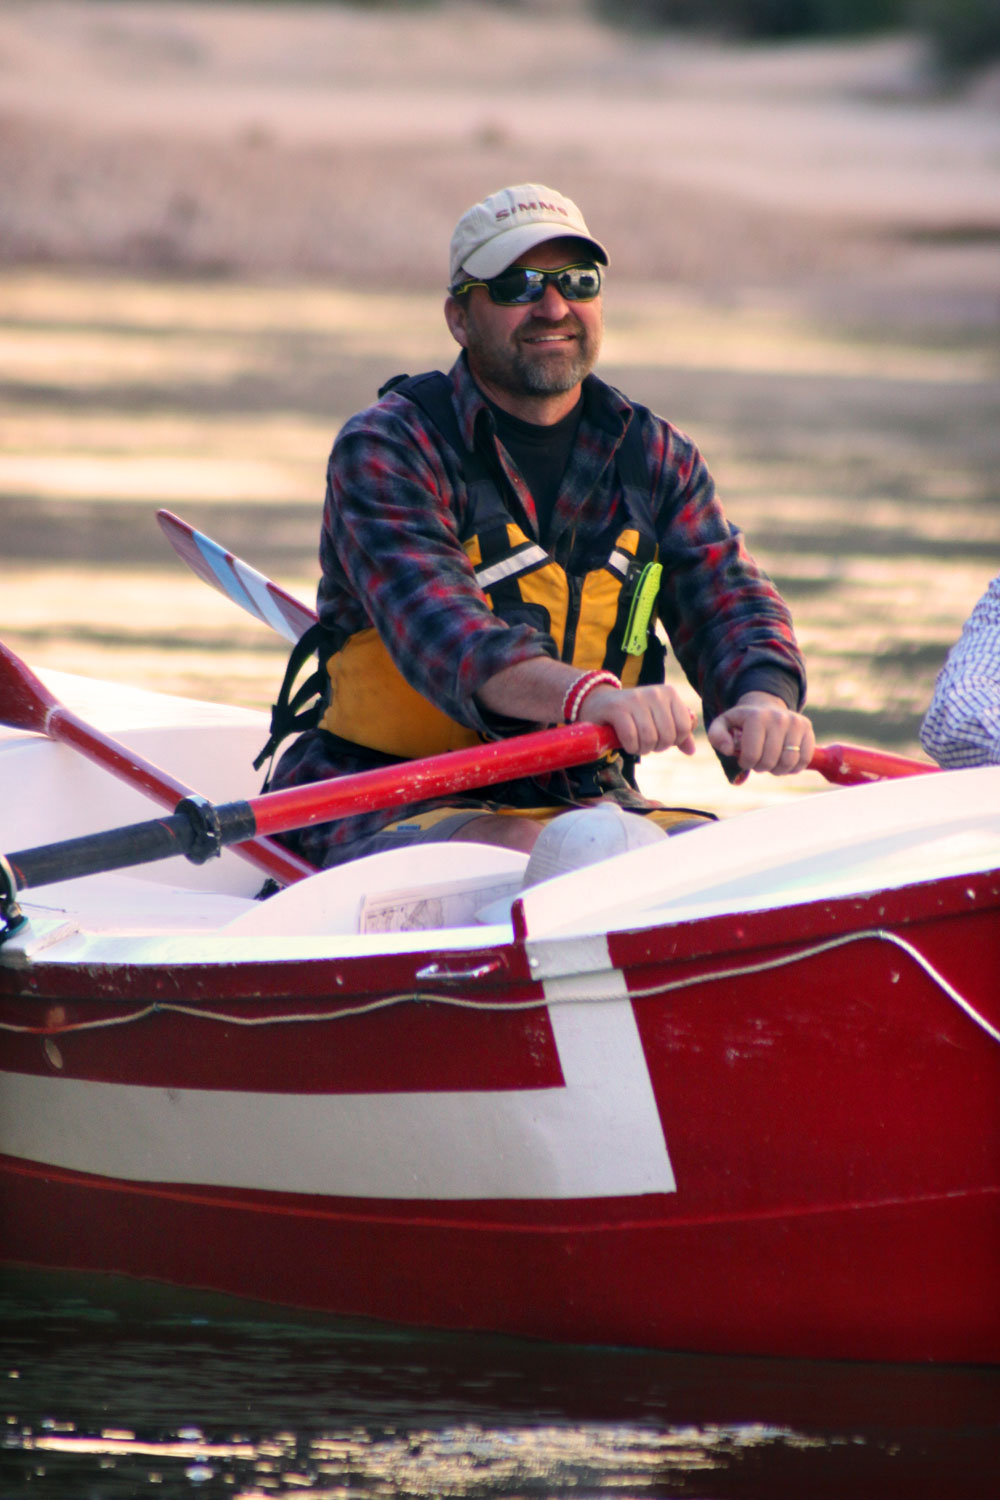 Greg Hatten, river guide extraordinaire, in his wooden boat. Greg is also wearing a Pendleton shirt.